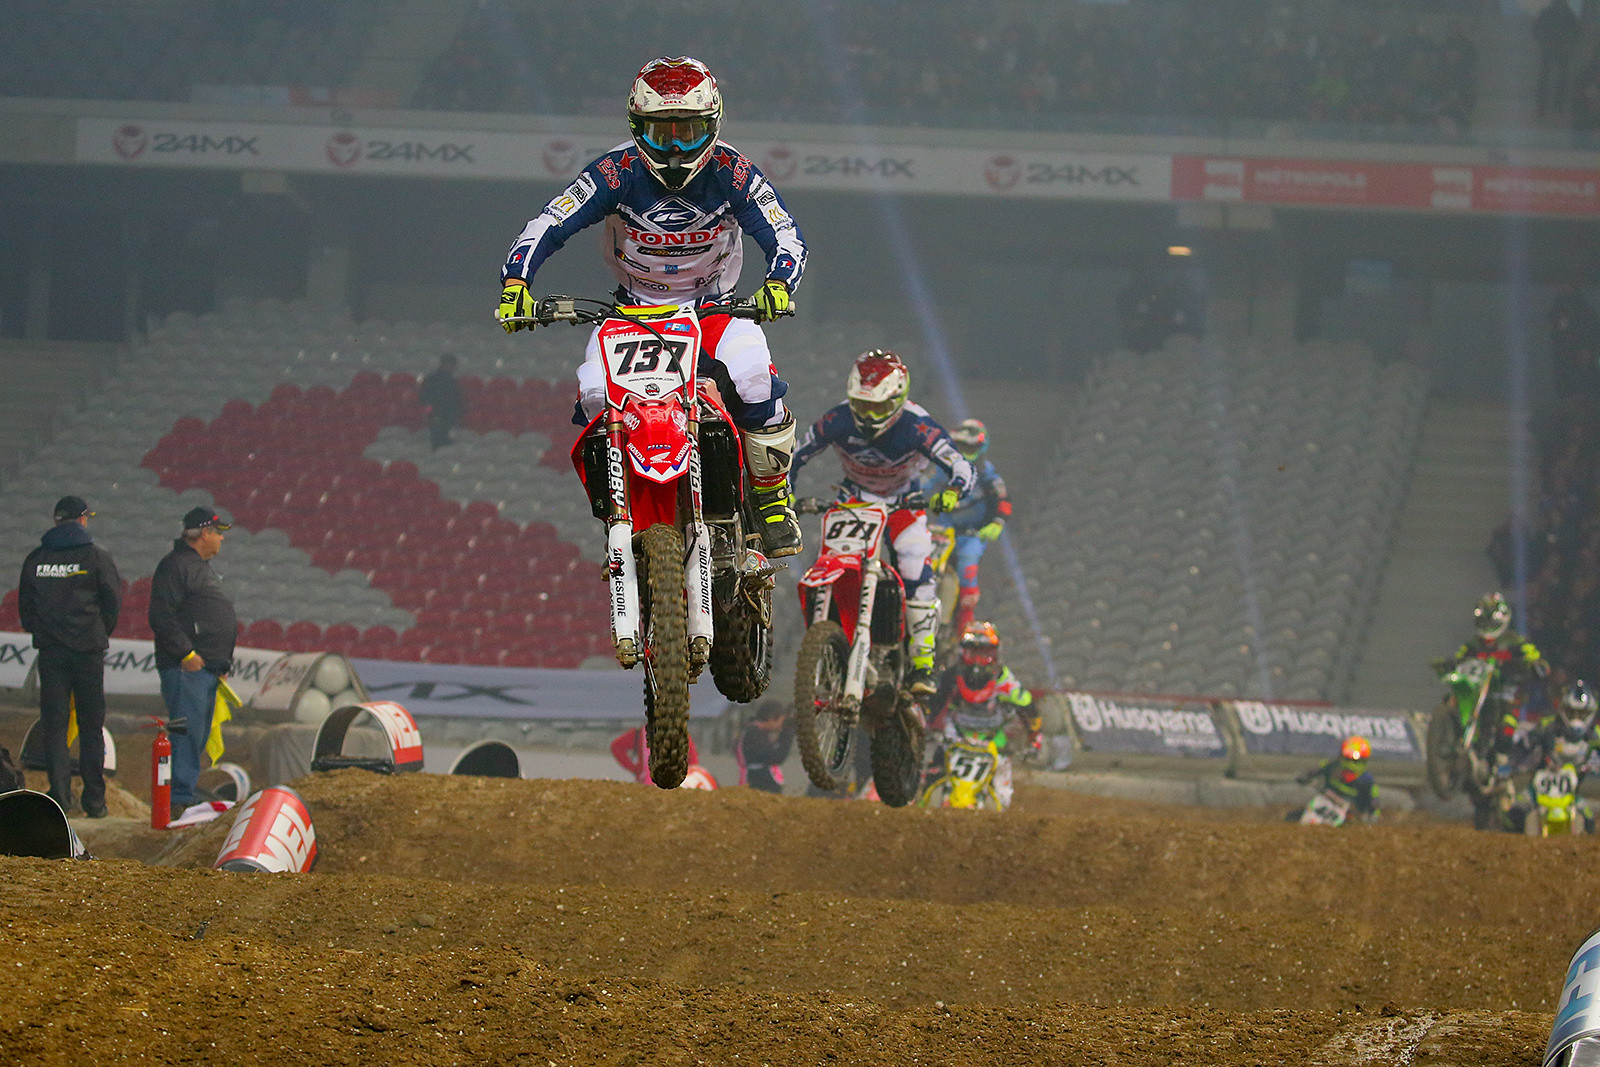 Valentin Teillet - Photo Gallery: Saturday at the Paris-Lille Supercross - Motocross Pictures - Vital MX